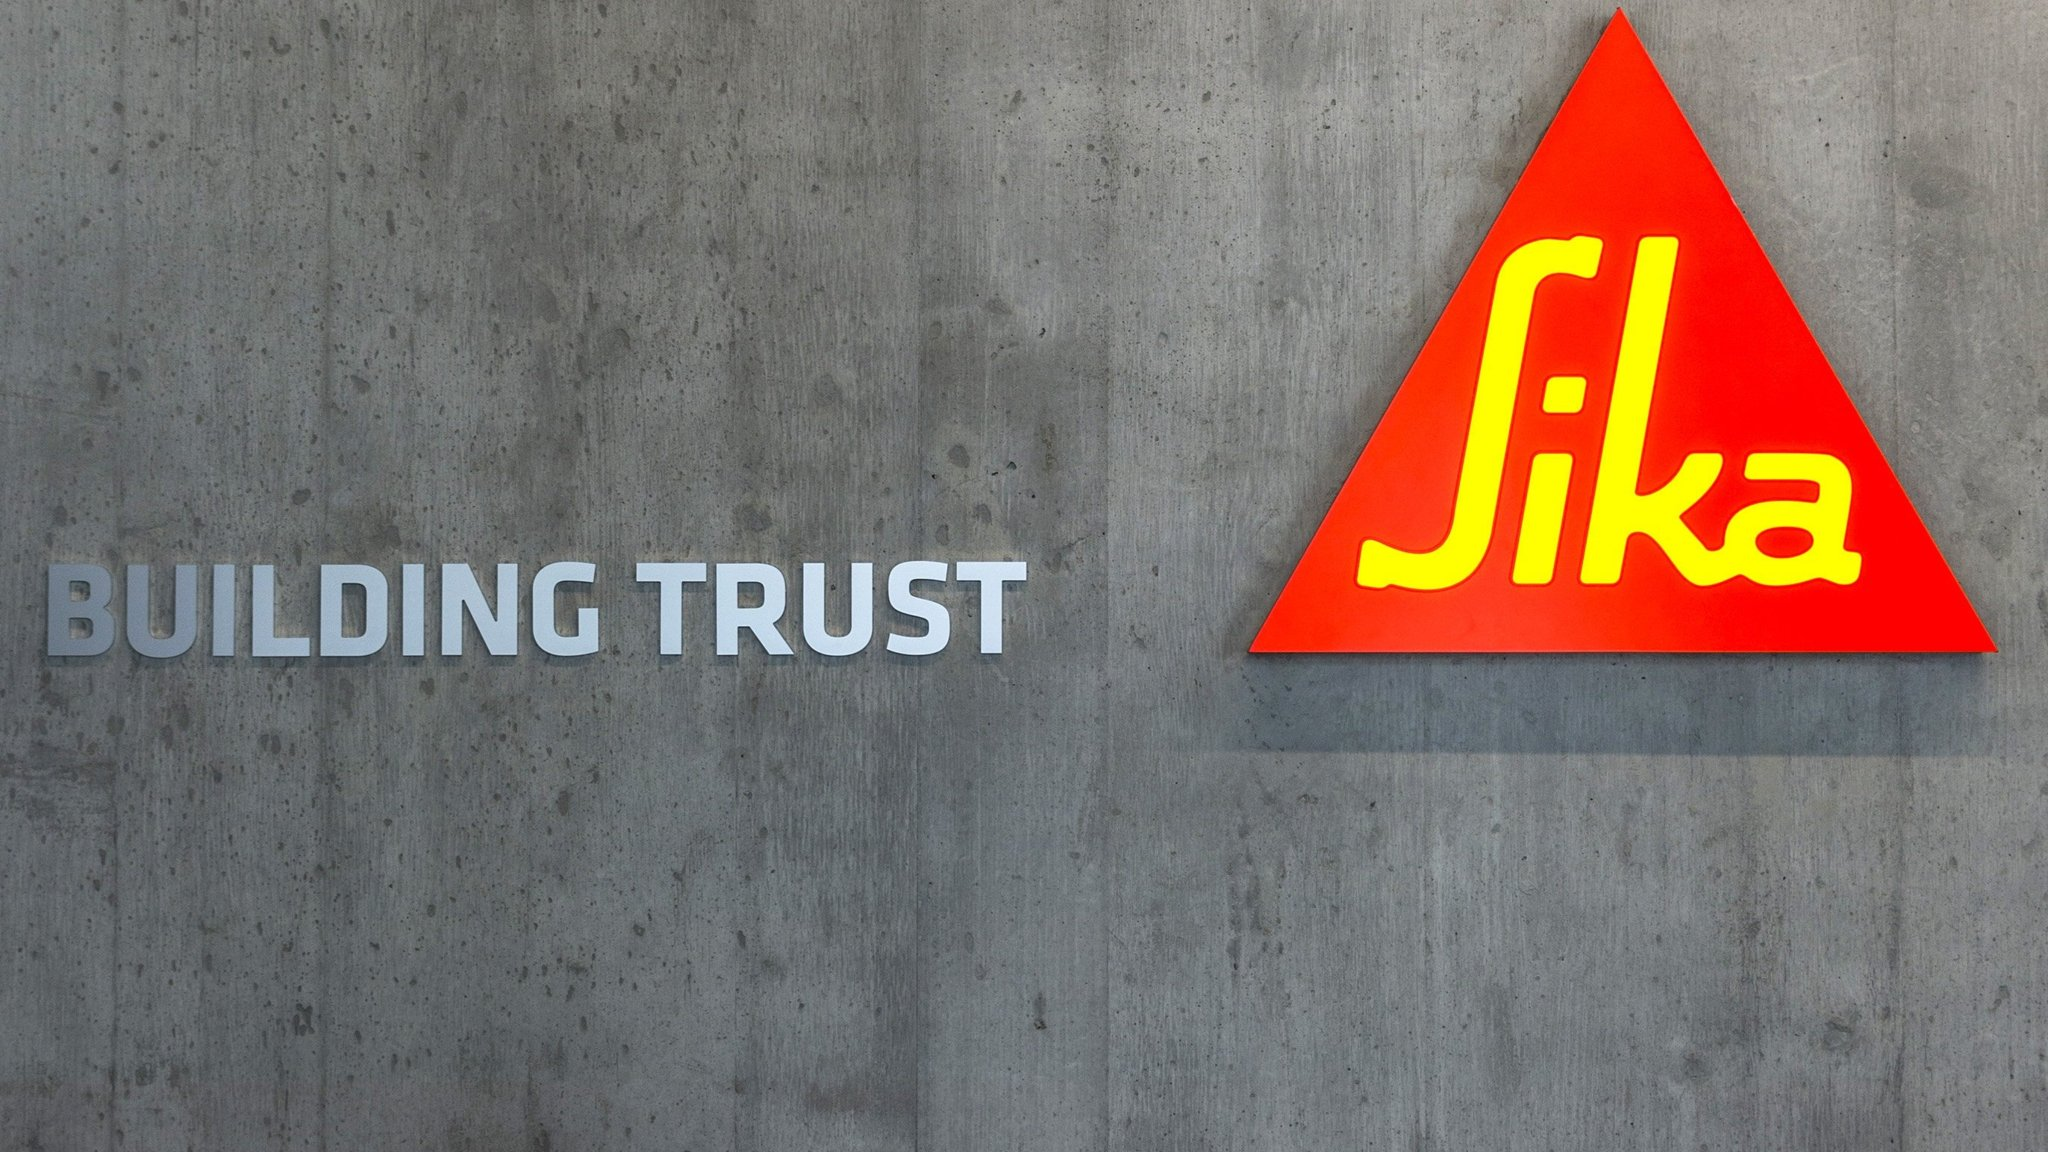 Swiss Court Blocks Saint Gobain Move For Sika